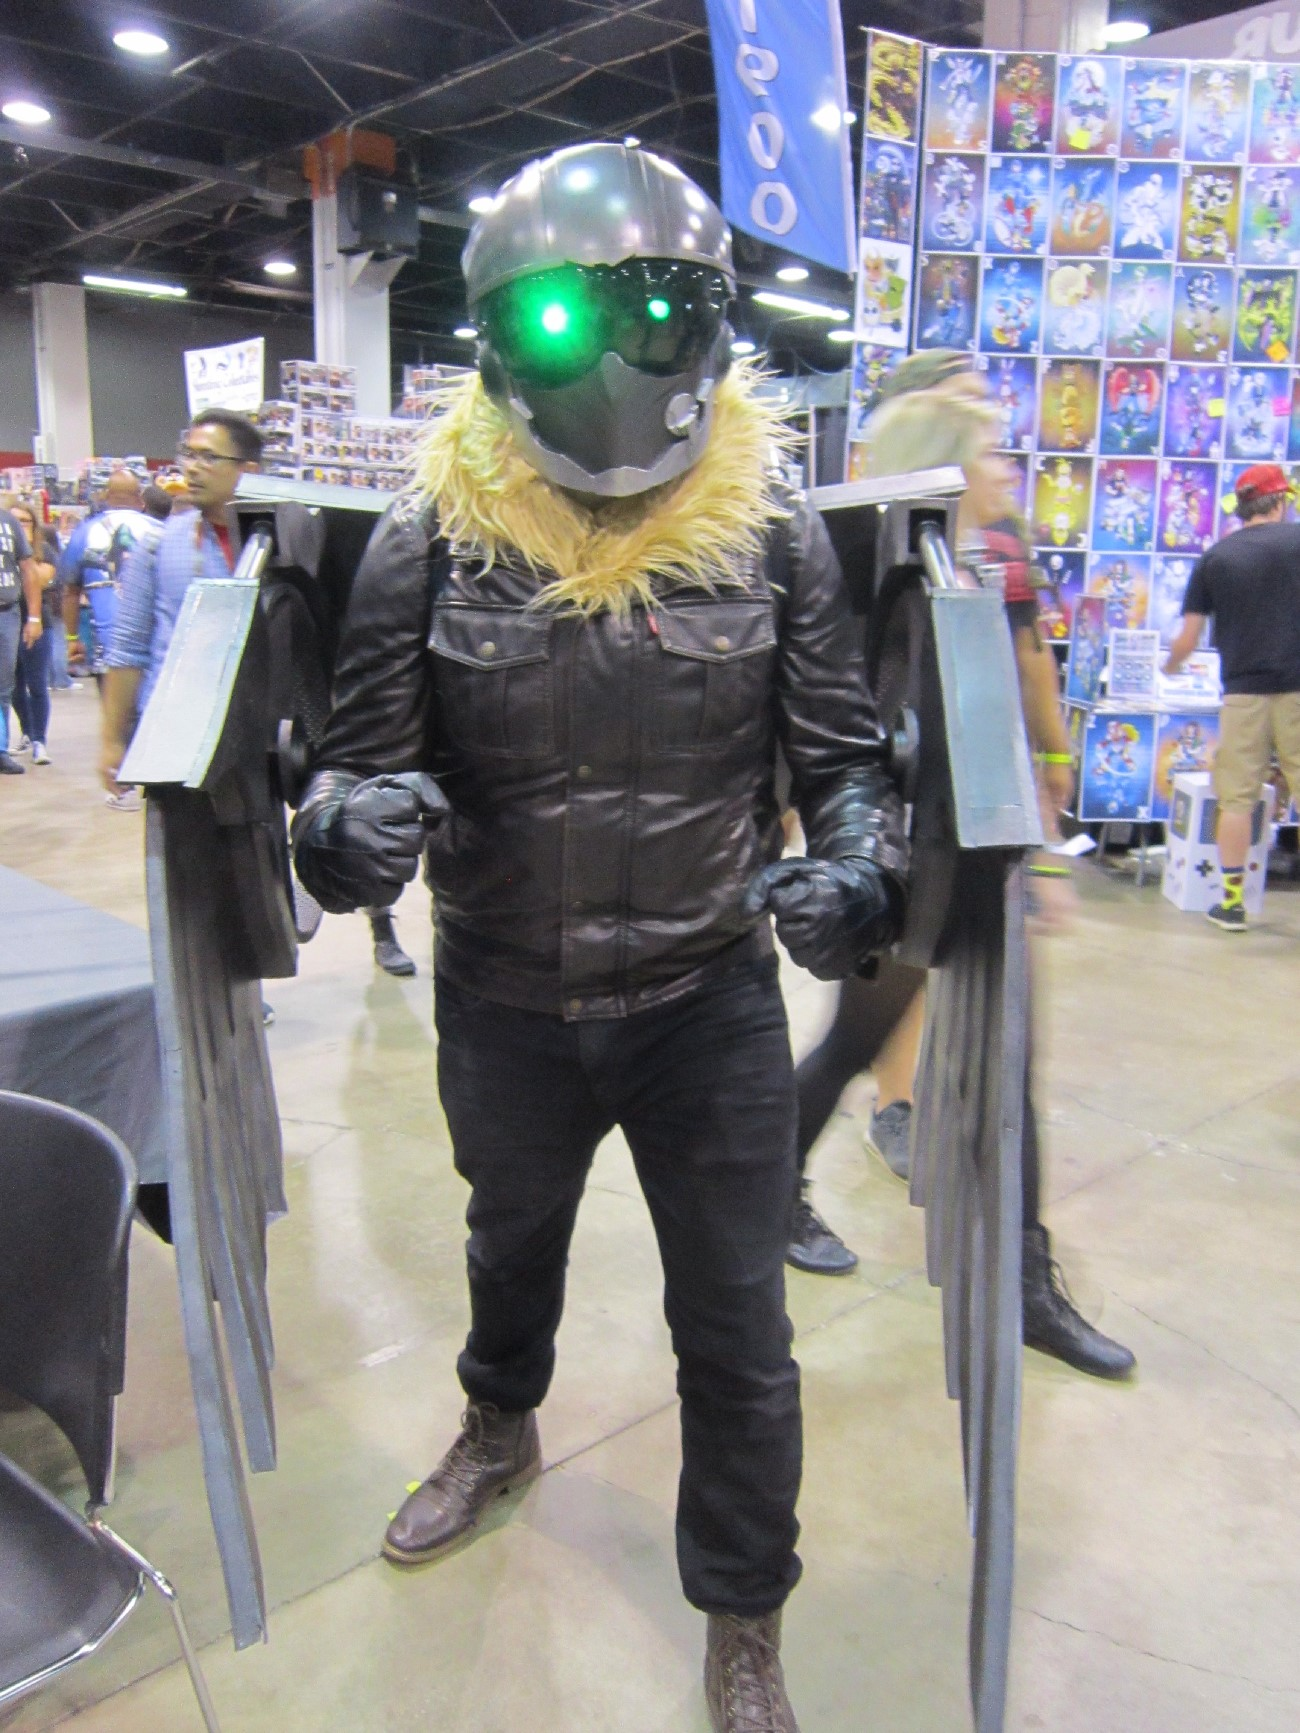 Wizard World Chicago 2017 Photos, Part 1: Comics Cosplay! « Midlife Crisis Crossover!